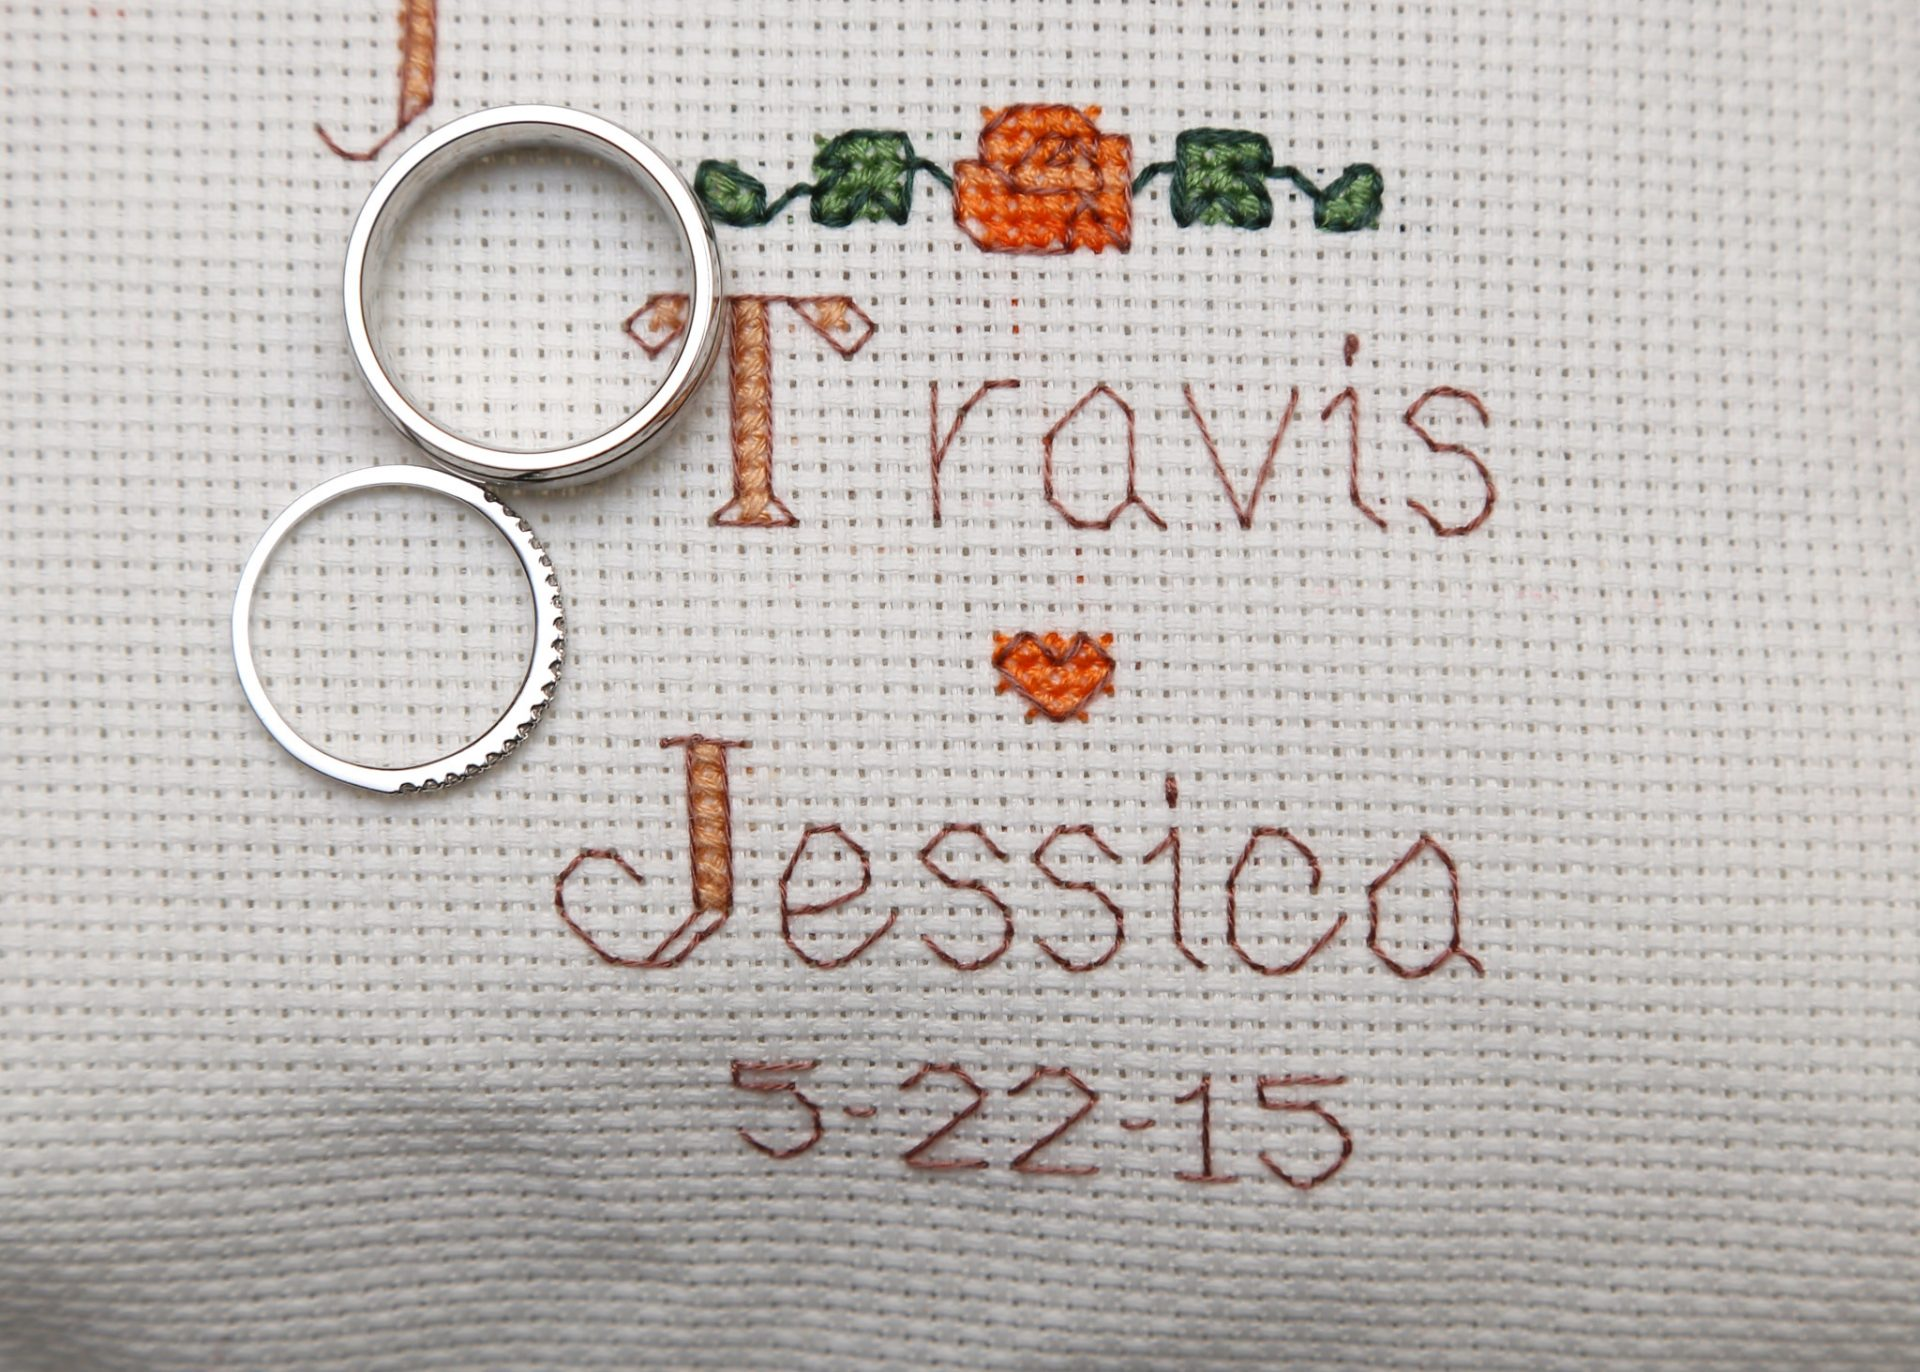 hand made wedding gift of cross stitched pillow with name of bride and groom and date of wedding